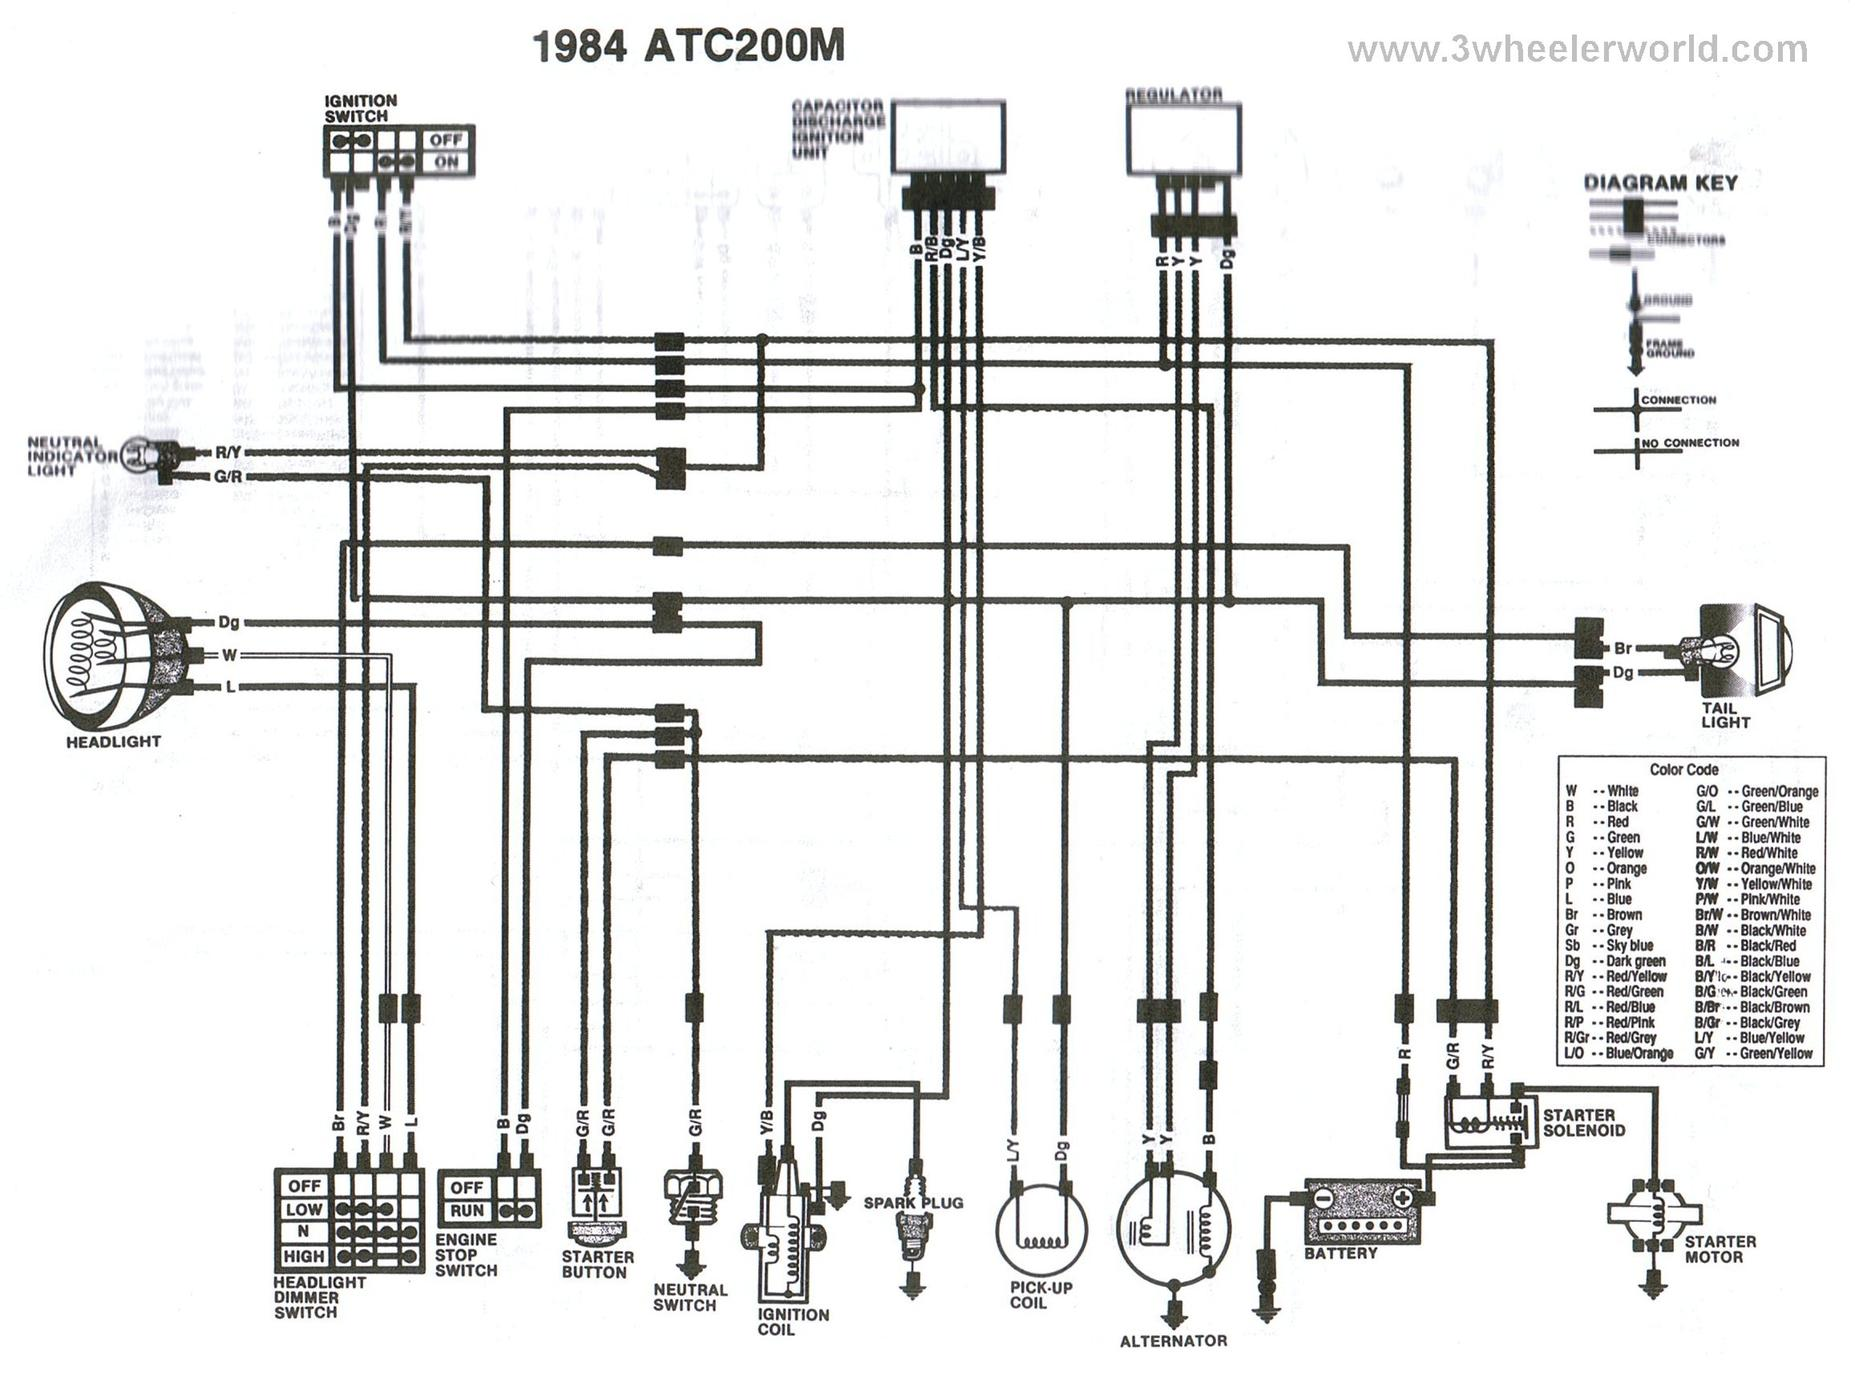 Article Preview. Wiring Diagrams atc200m 1984